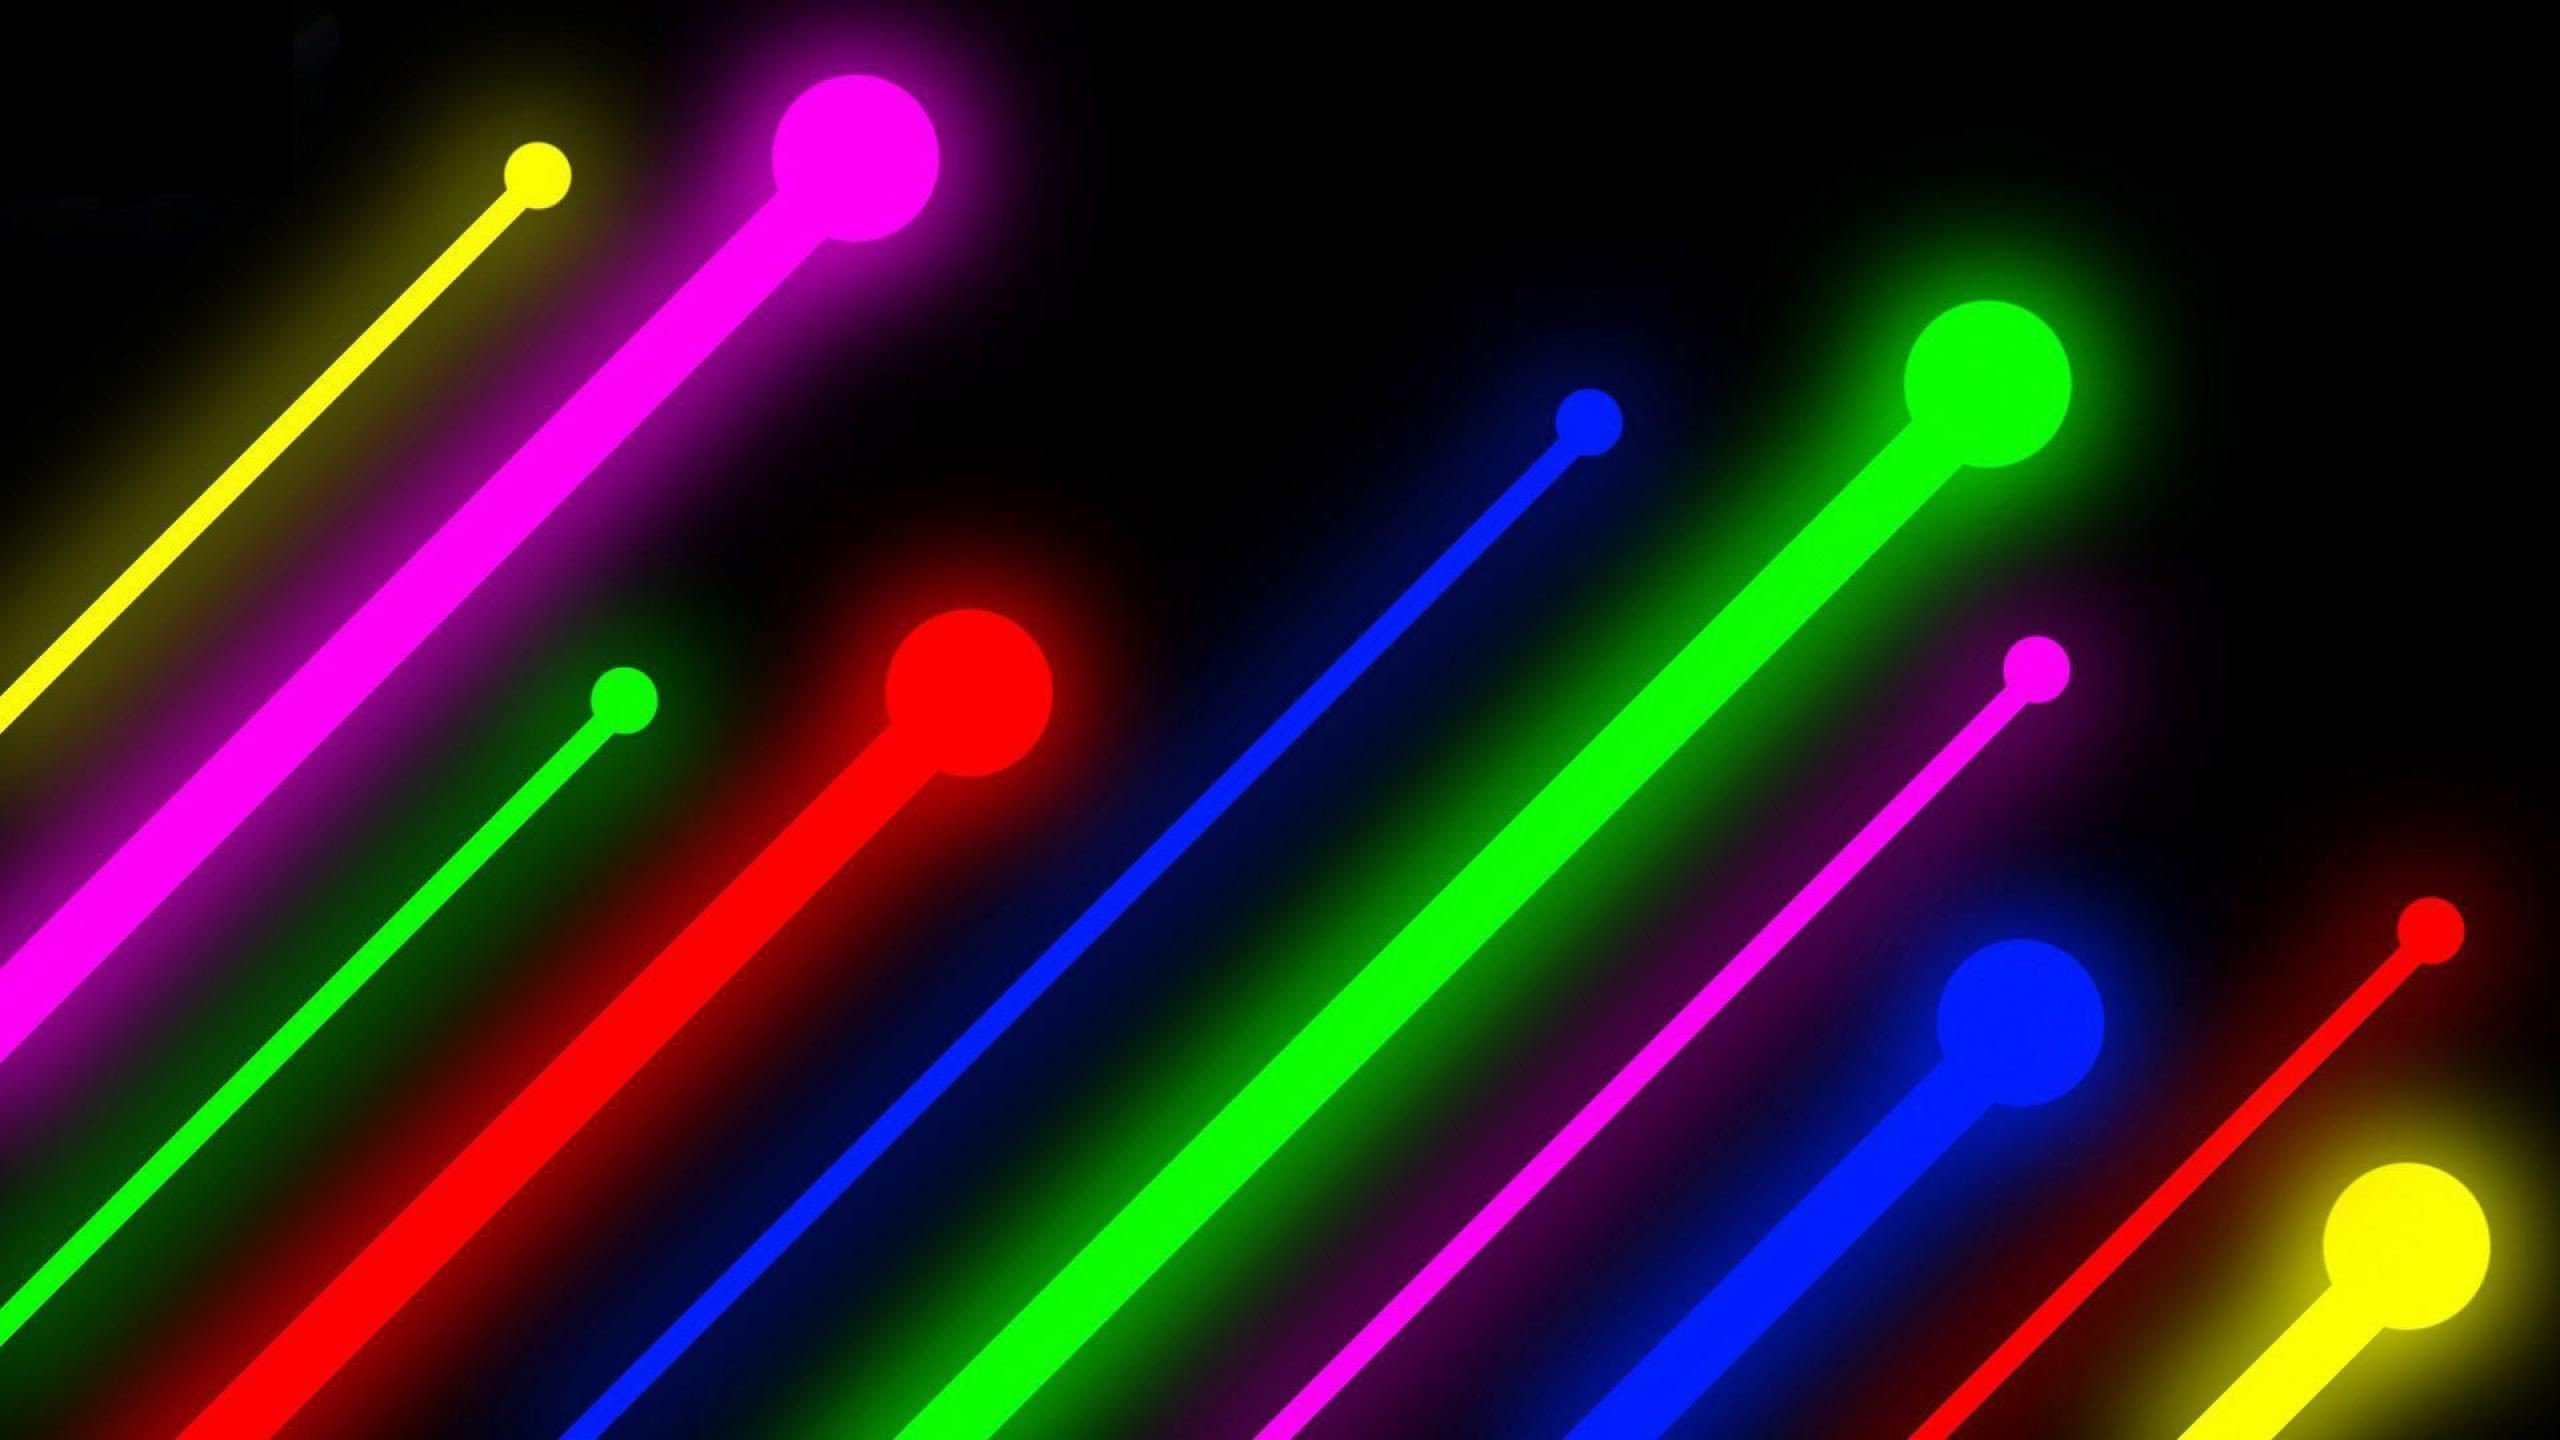 2560x1440 Images Of Neon Abstract